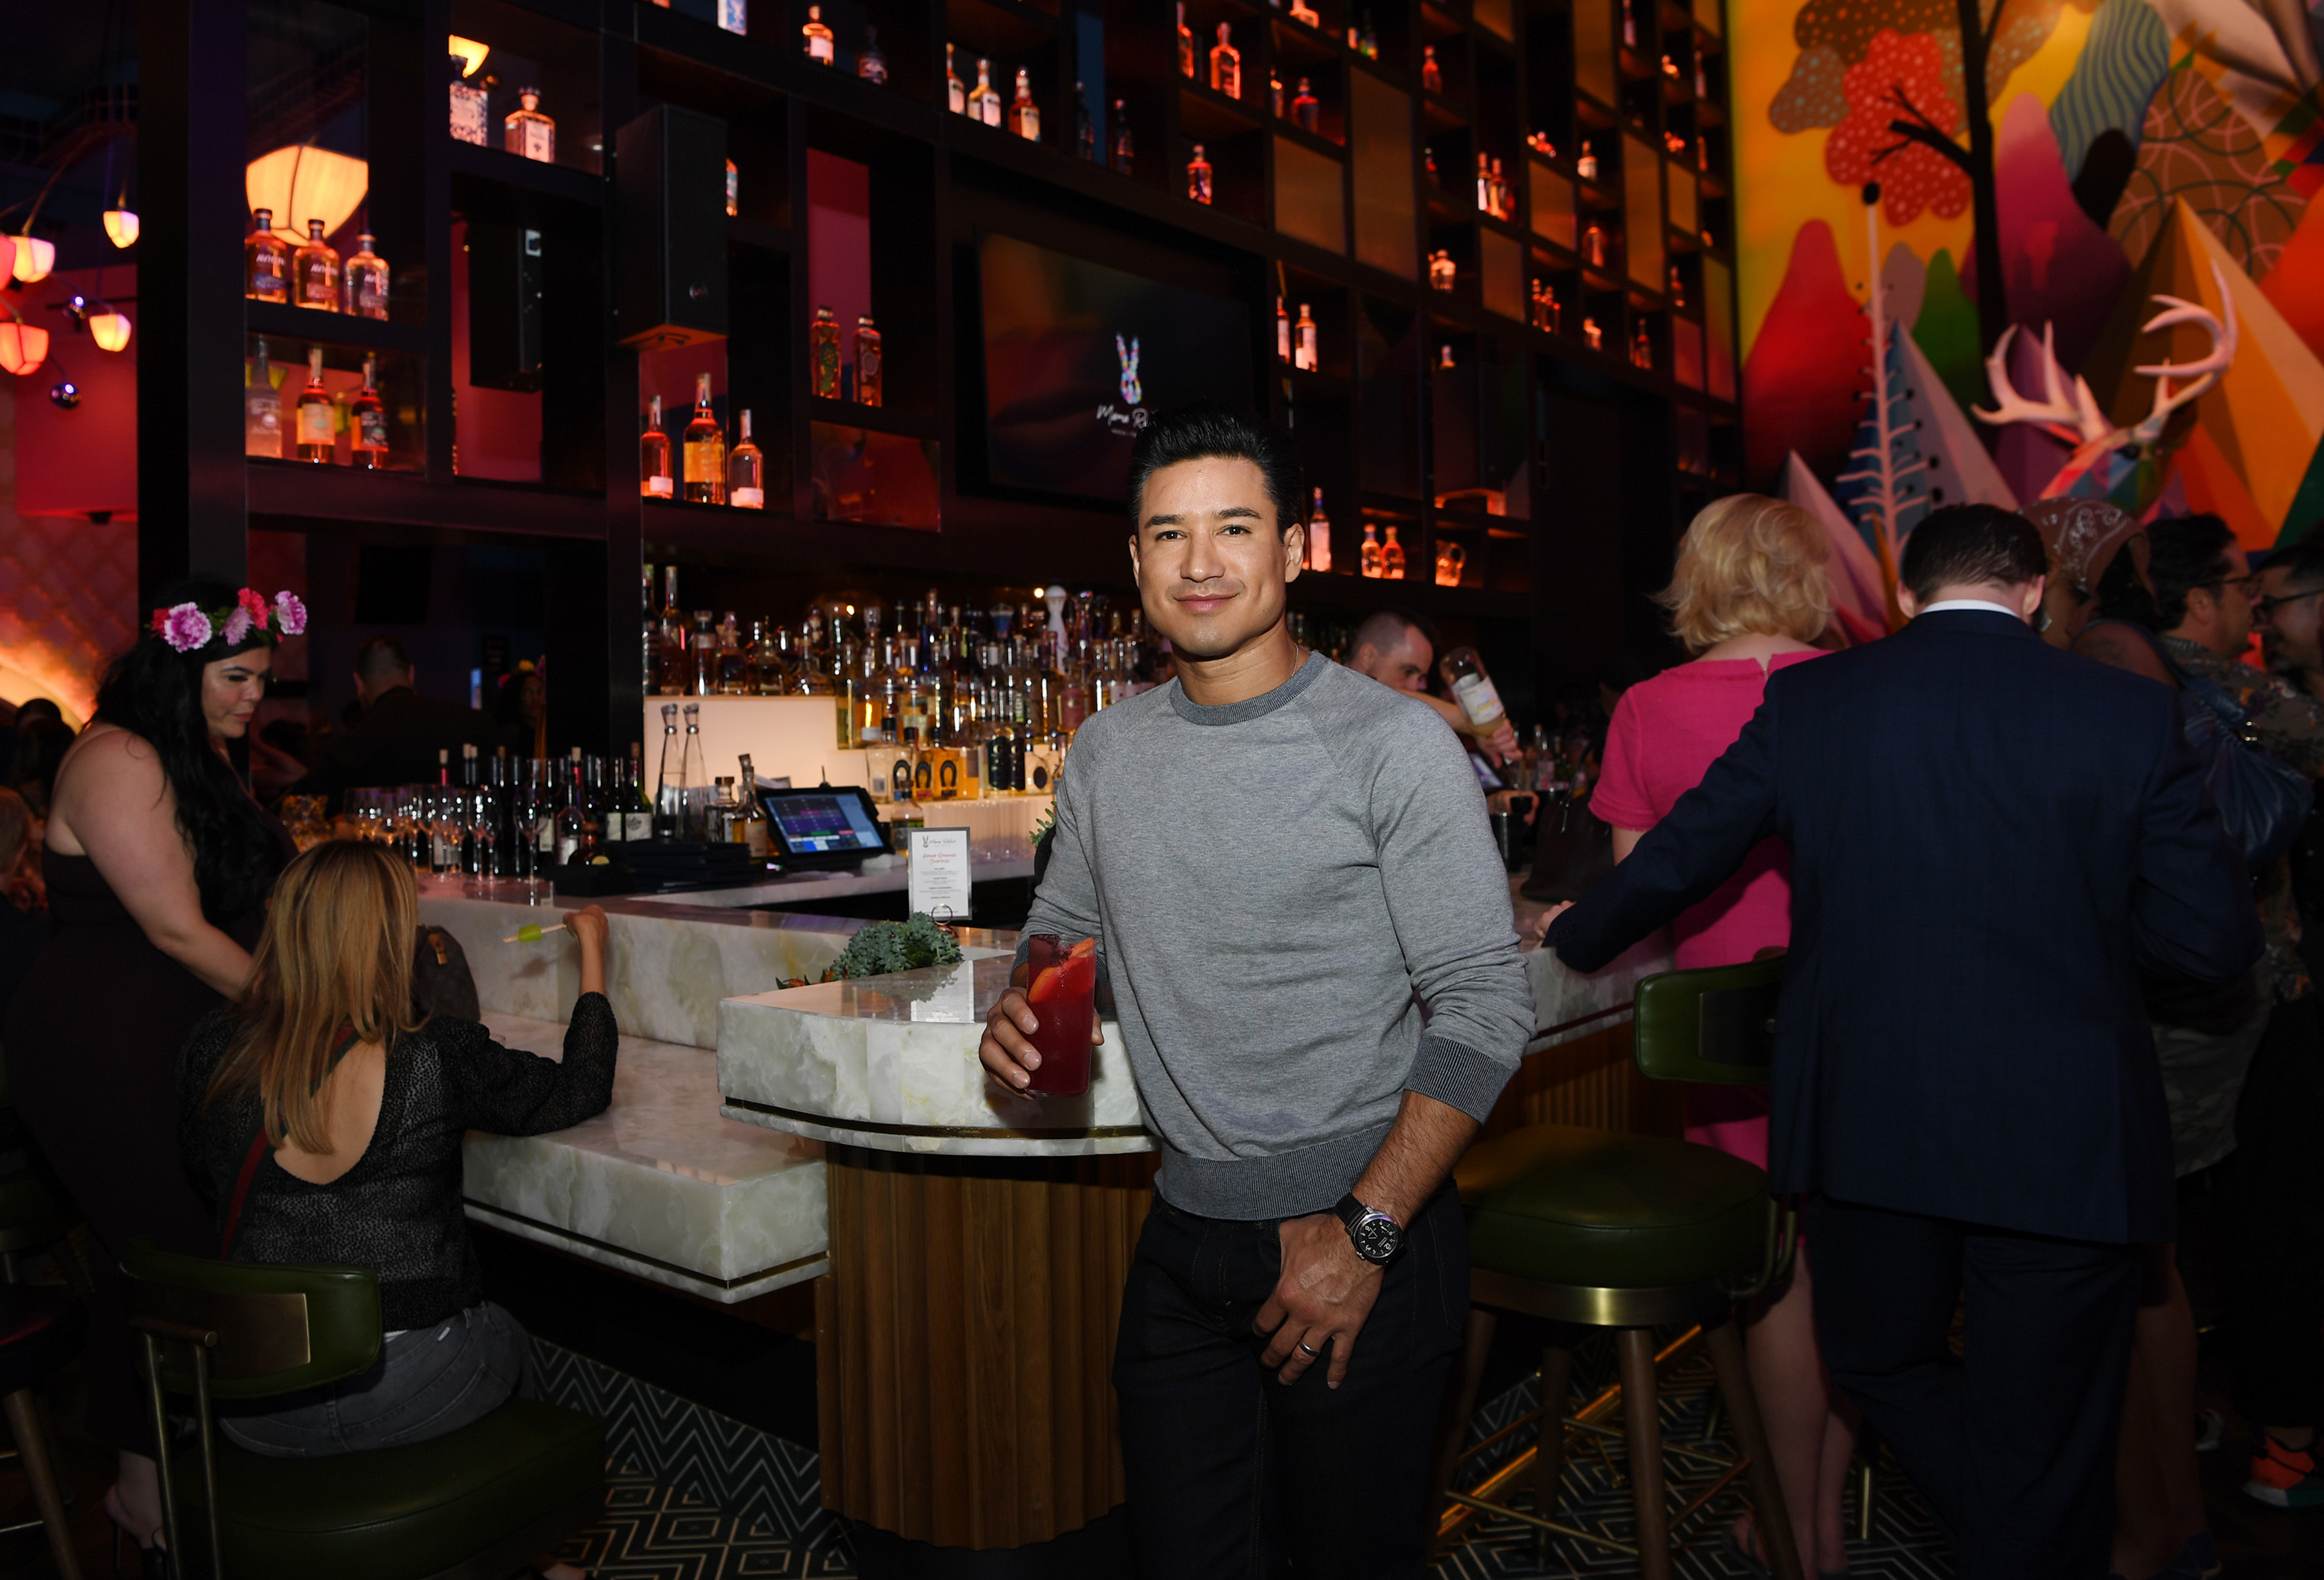 A man stands in front of a bar with a cocktail